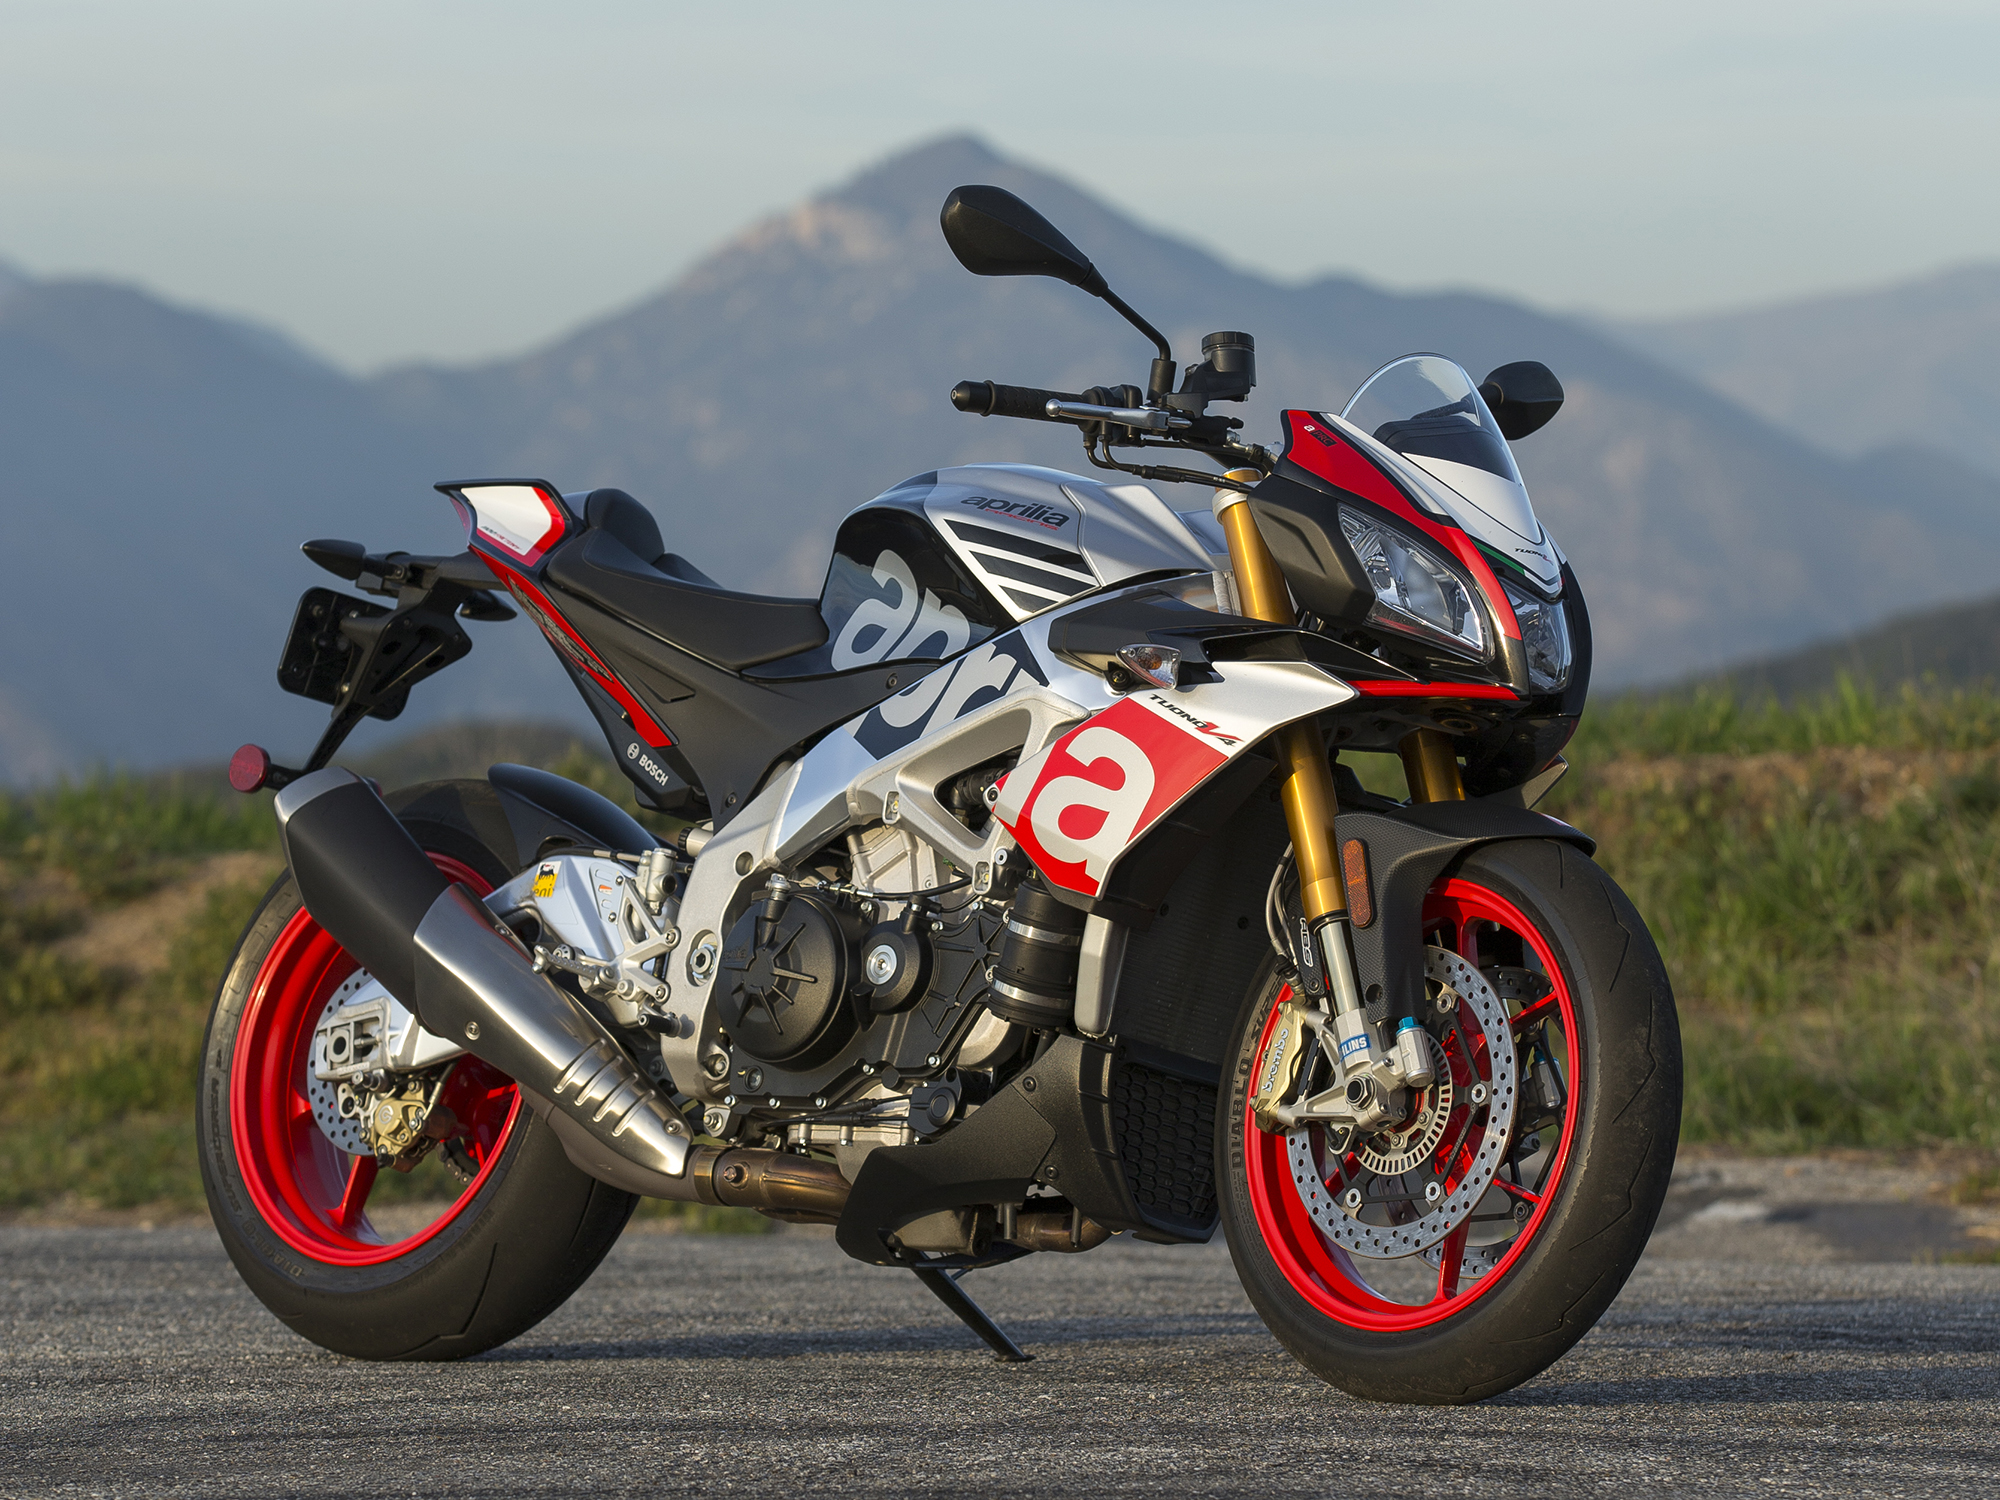 2016 Aprilia Tuono V4 1100 Factory Review | Cycle World